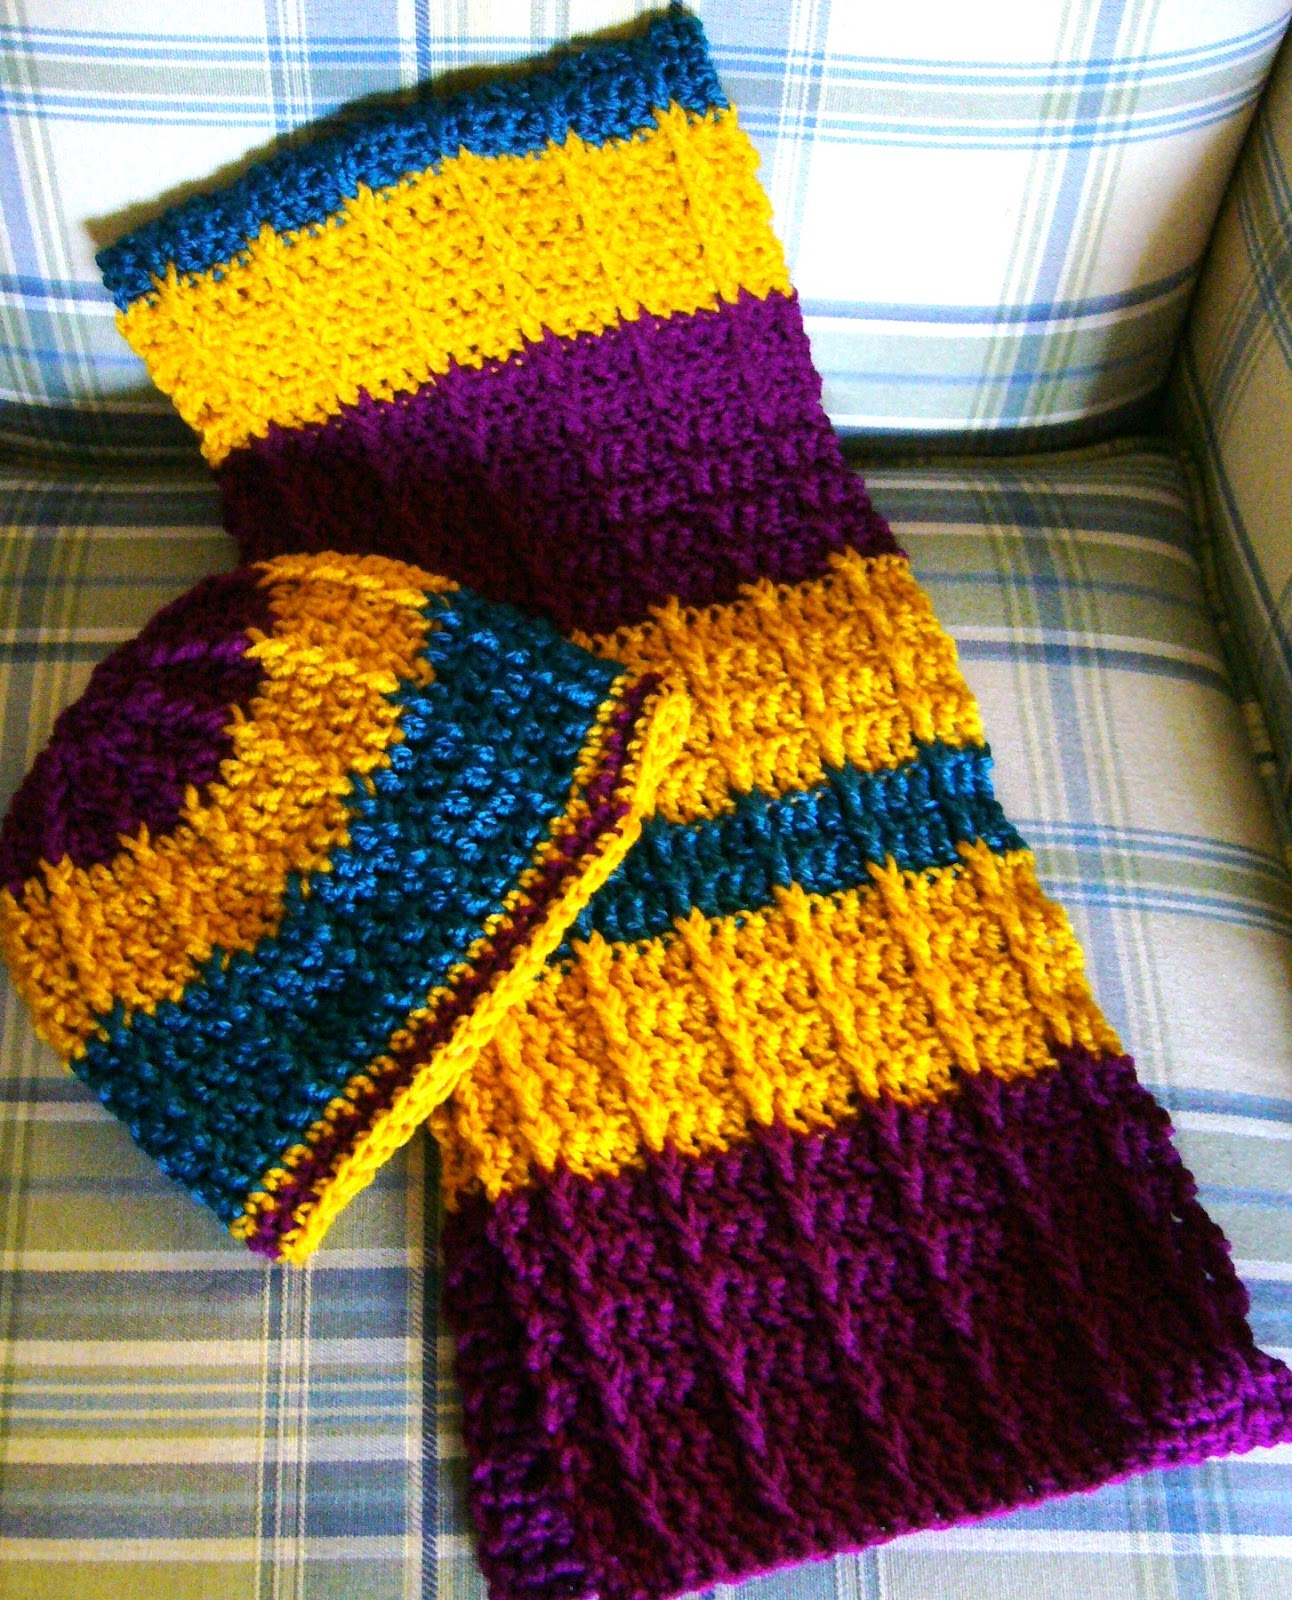 Crochet Patterns For Scarf And Hat : Simply Shoe Boxes: Double Crochet Front Post Crochet Scarf ...